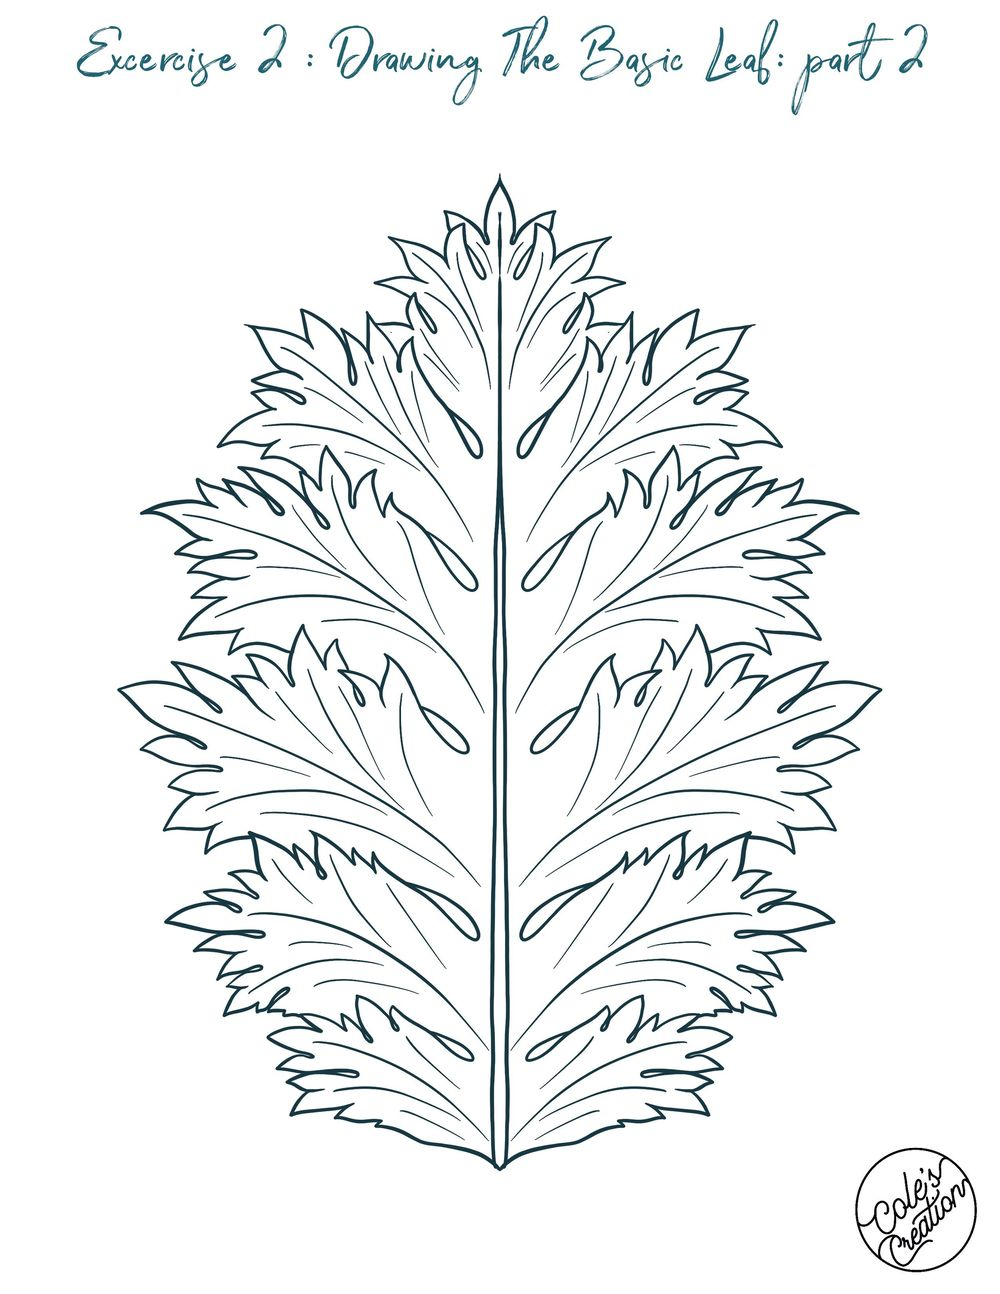 Acanthus - image 2 - student project